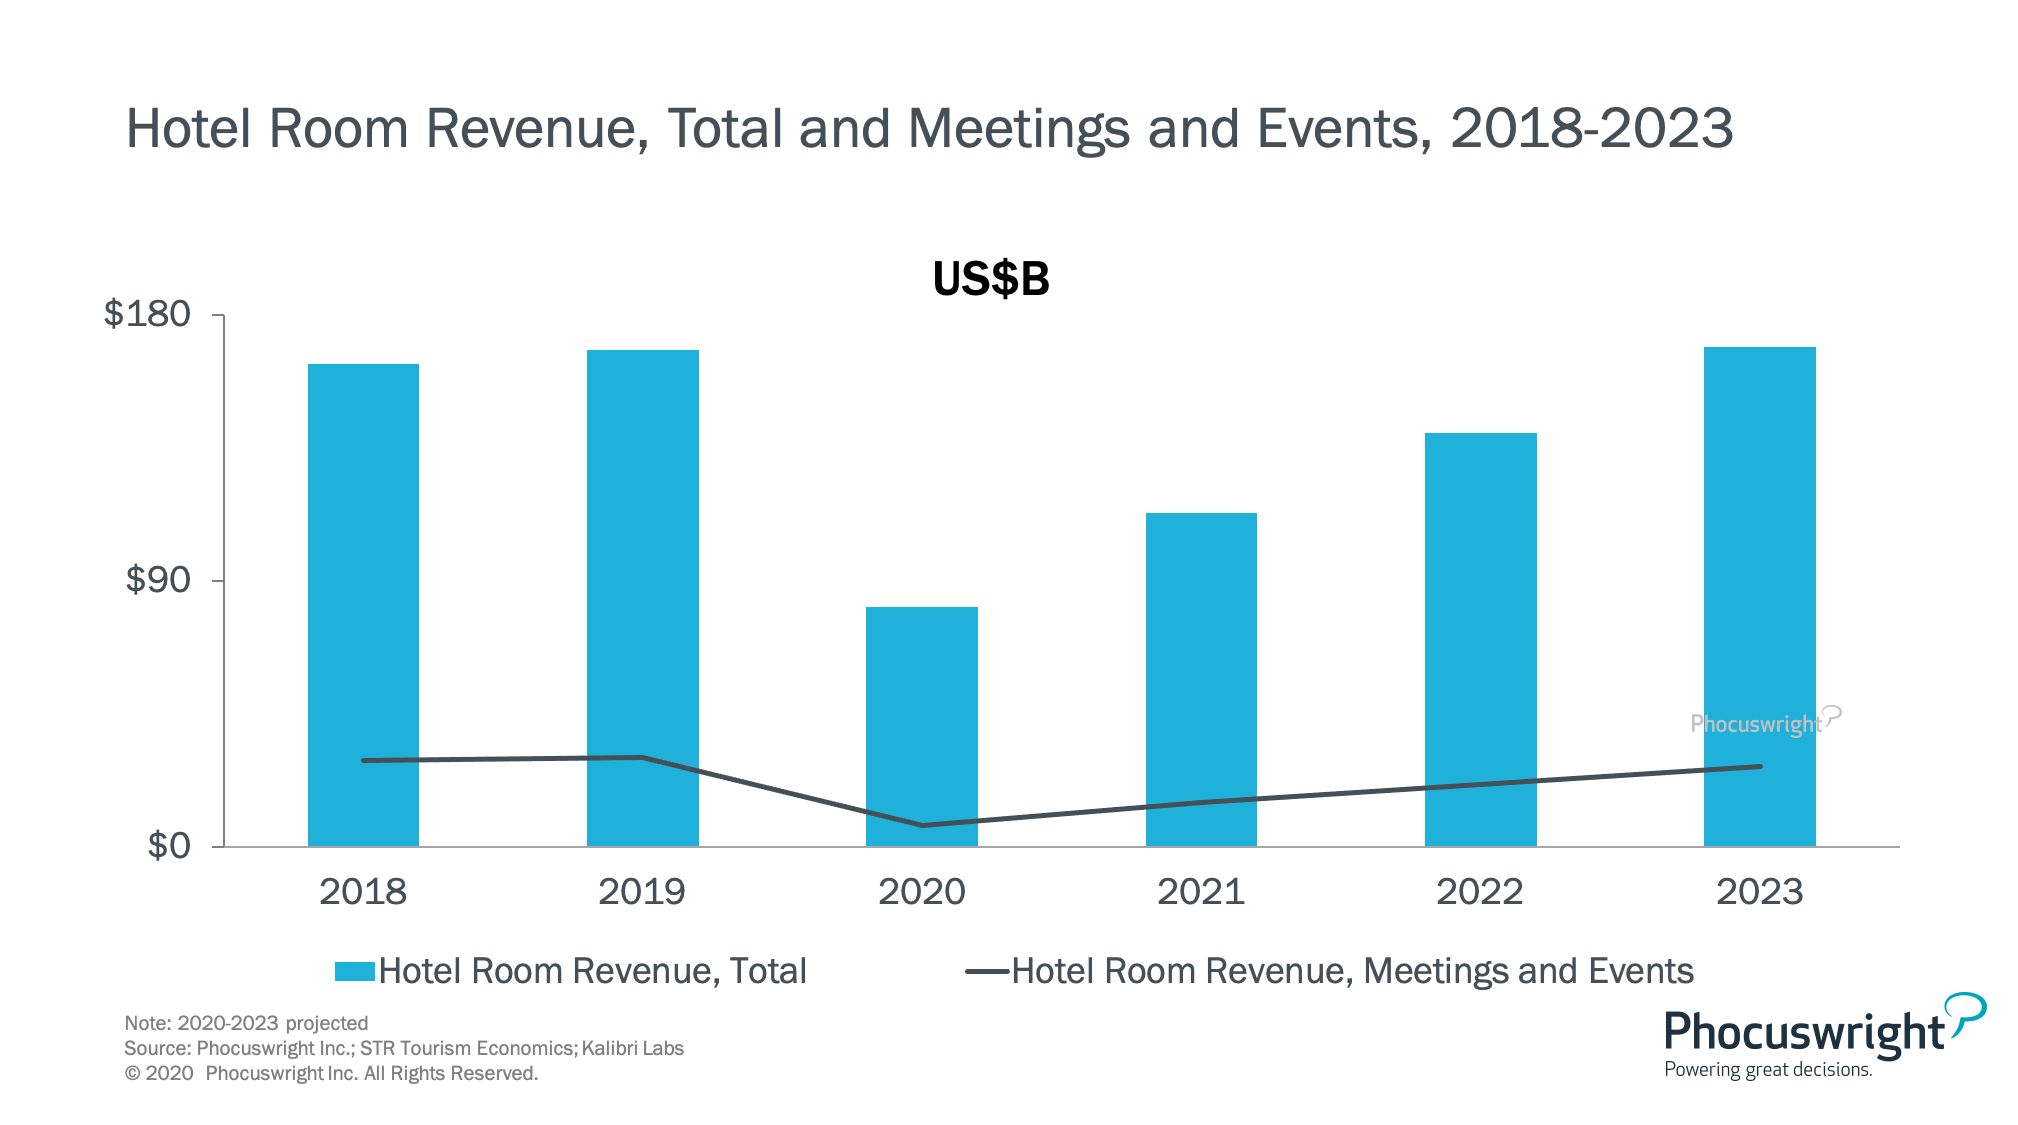 nws-chart-hotel-room-revenue-total-and-meetings-and-events-2018-2023-phocuswright-phocuswrightresearch